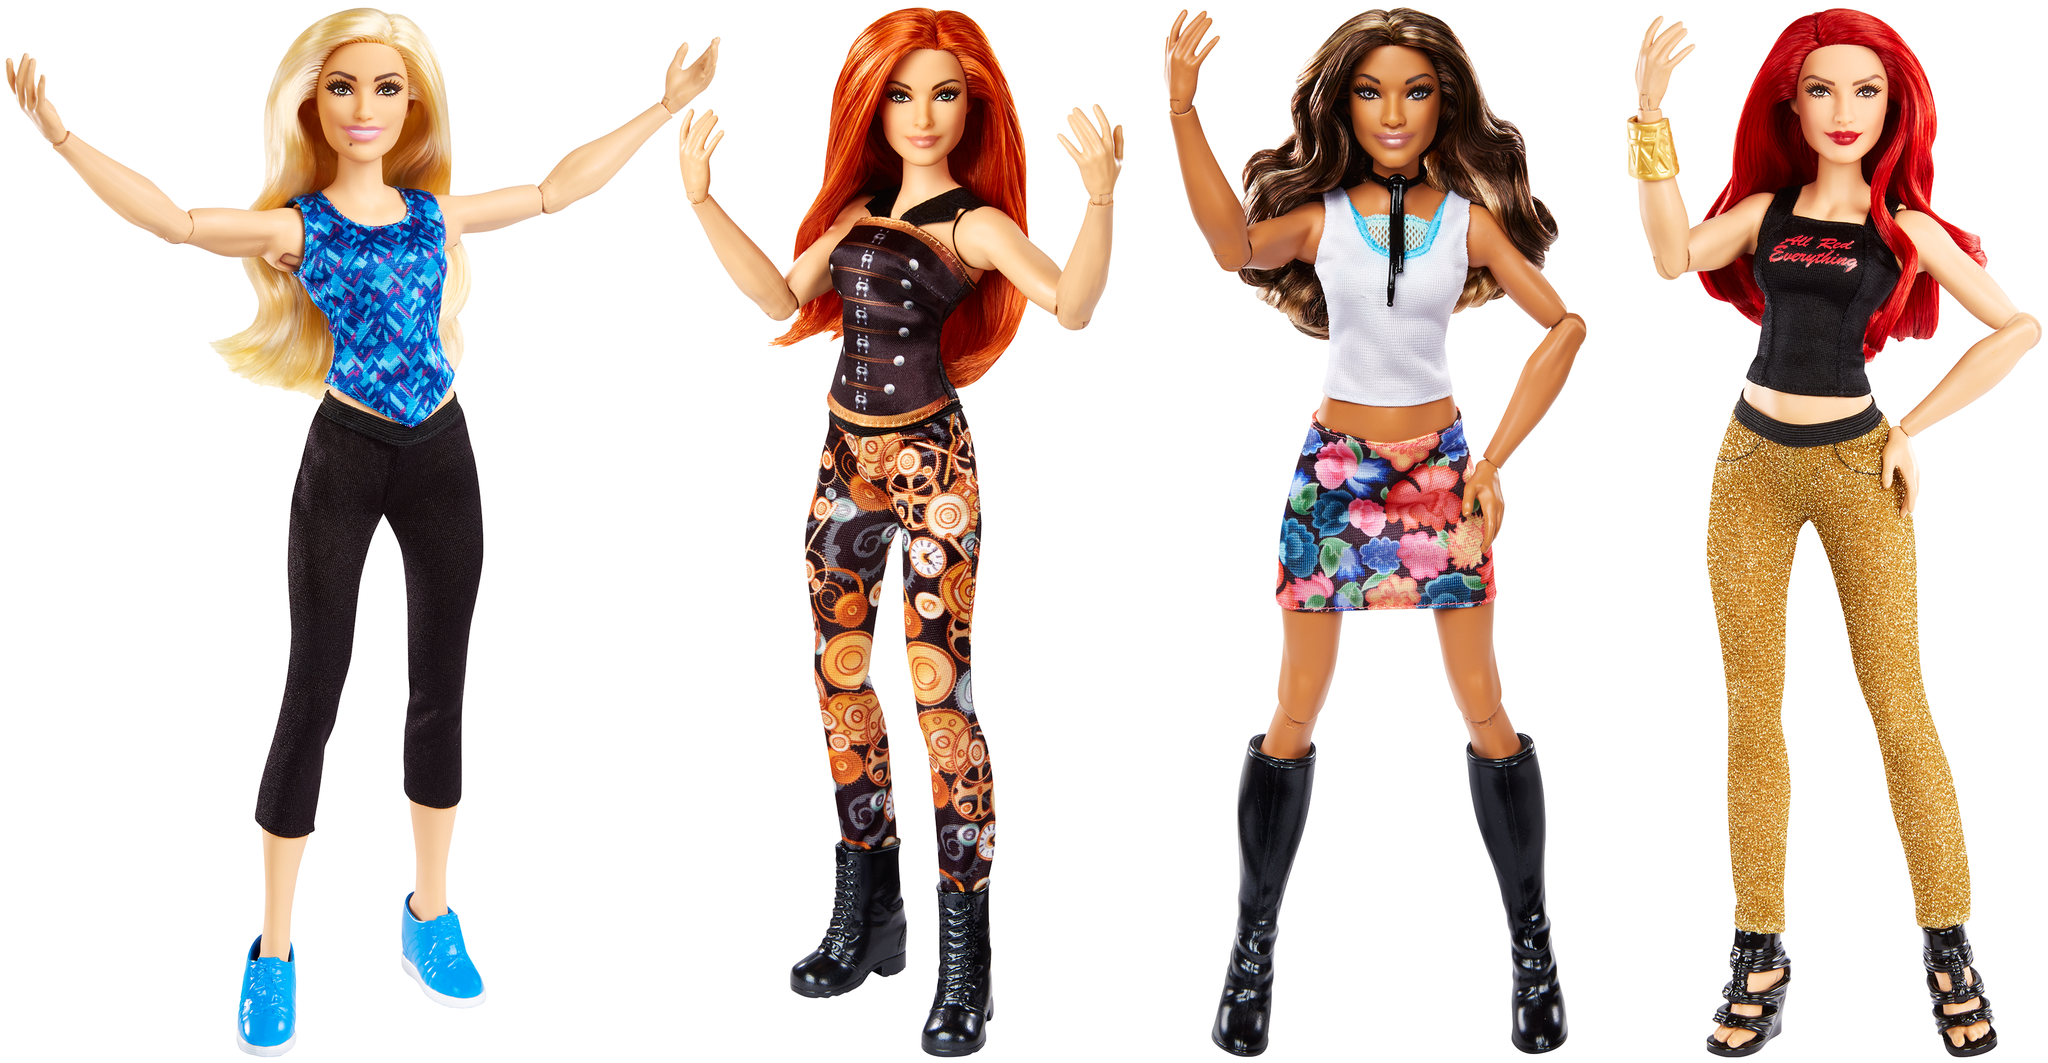 New dolls from WWE and Mattel.